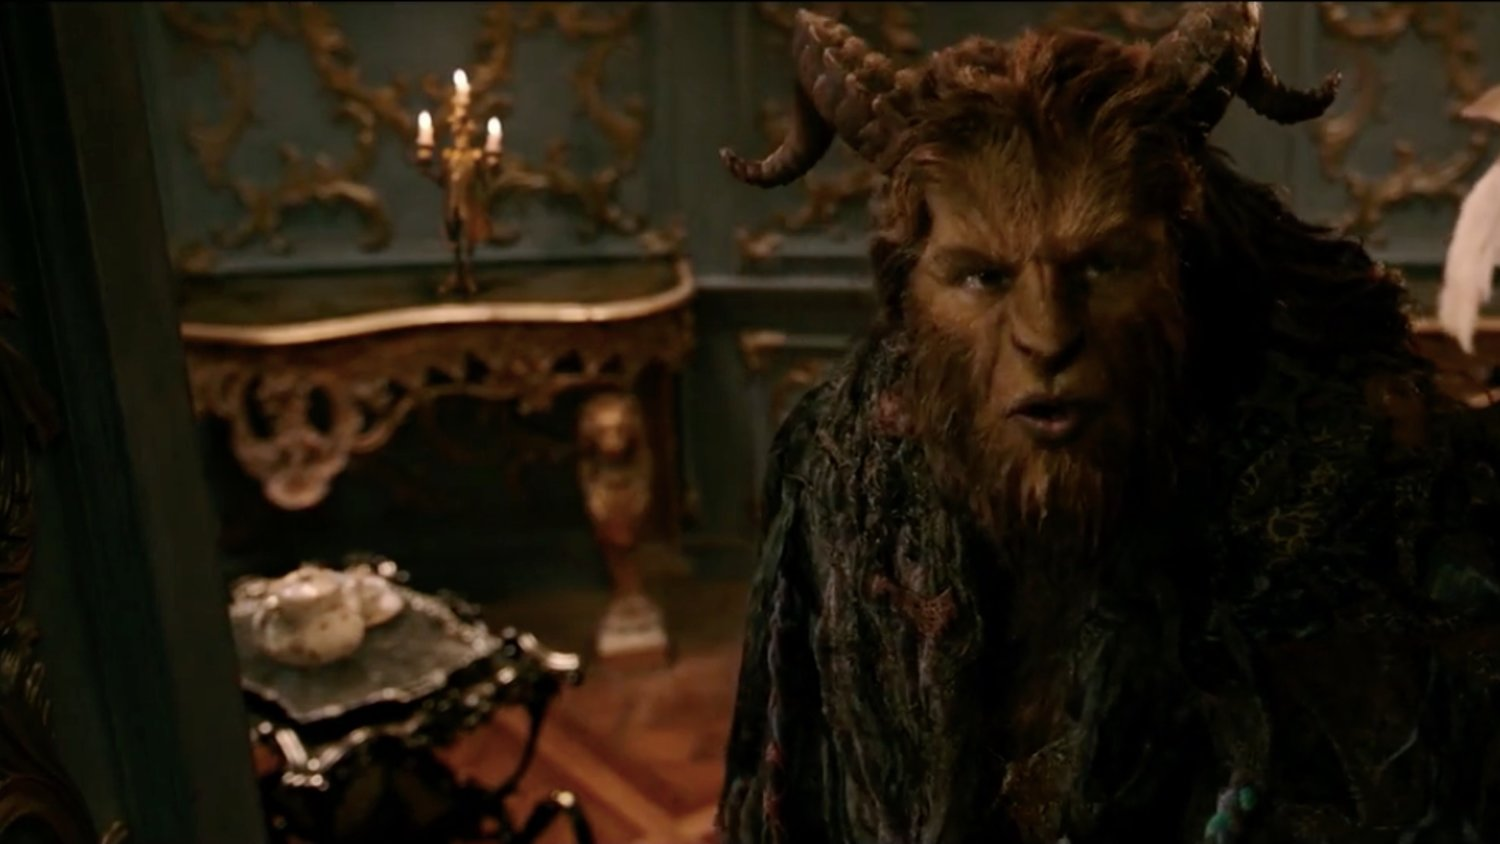 Watch a Beastly Invitation in New BEAUTY AND THE BEAST Clip